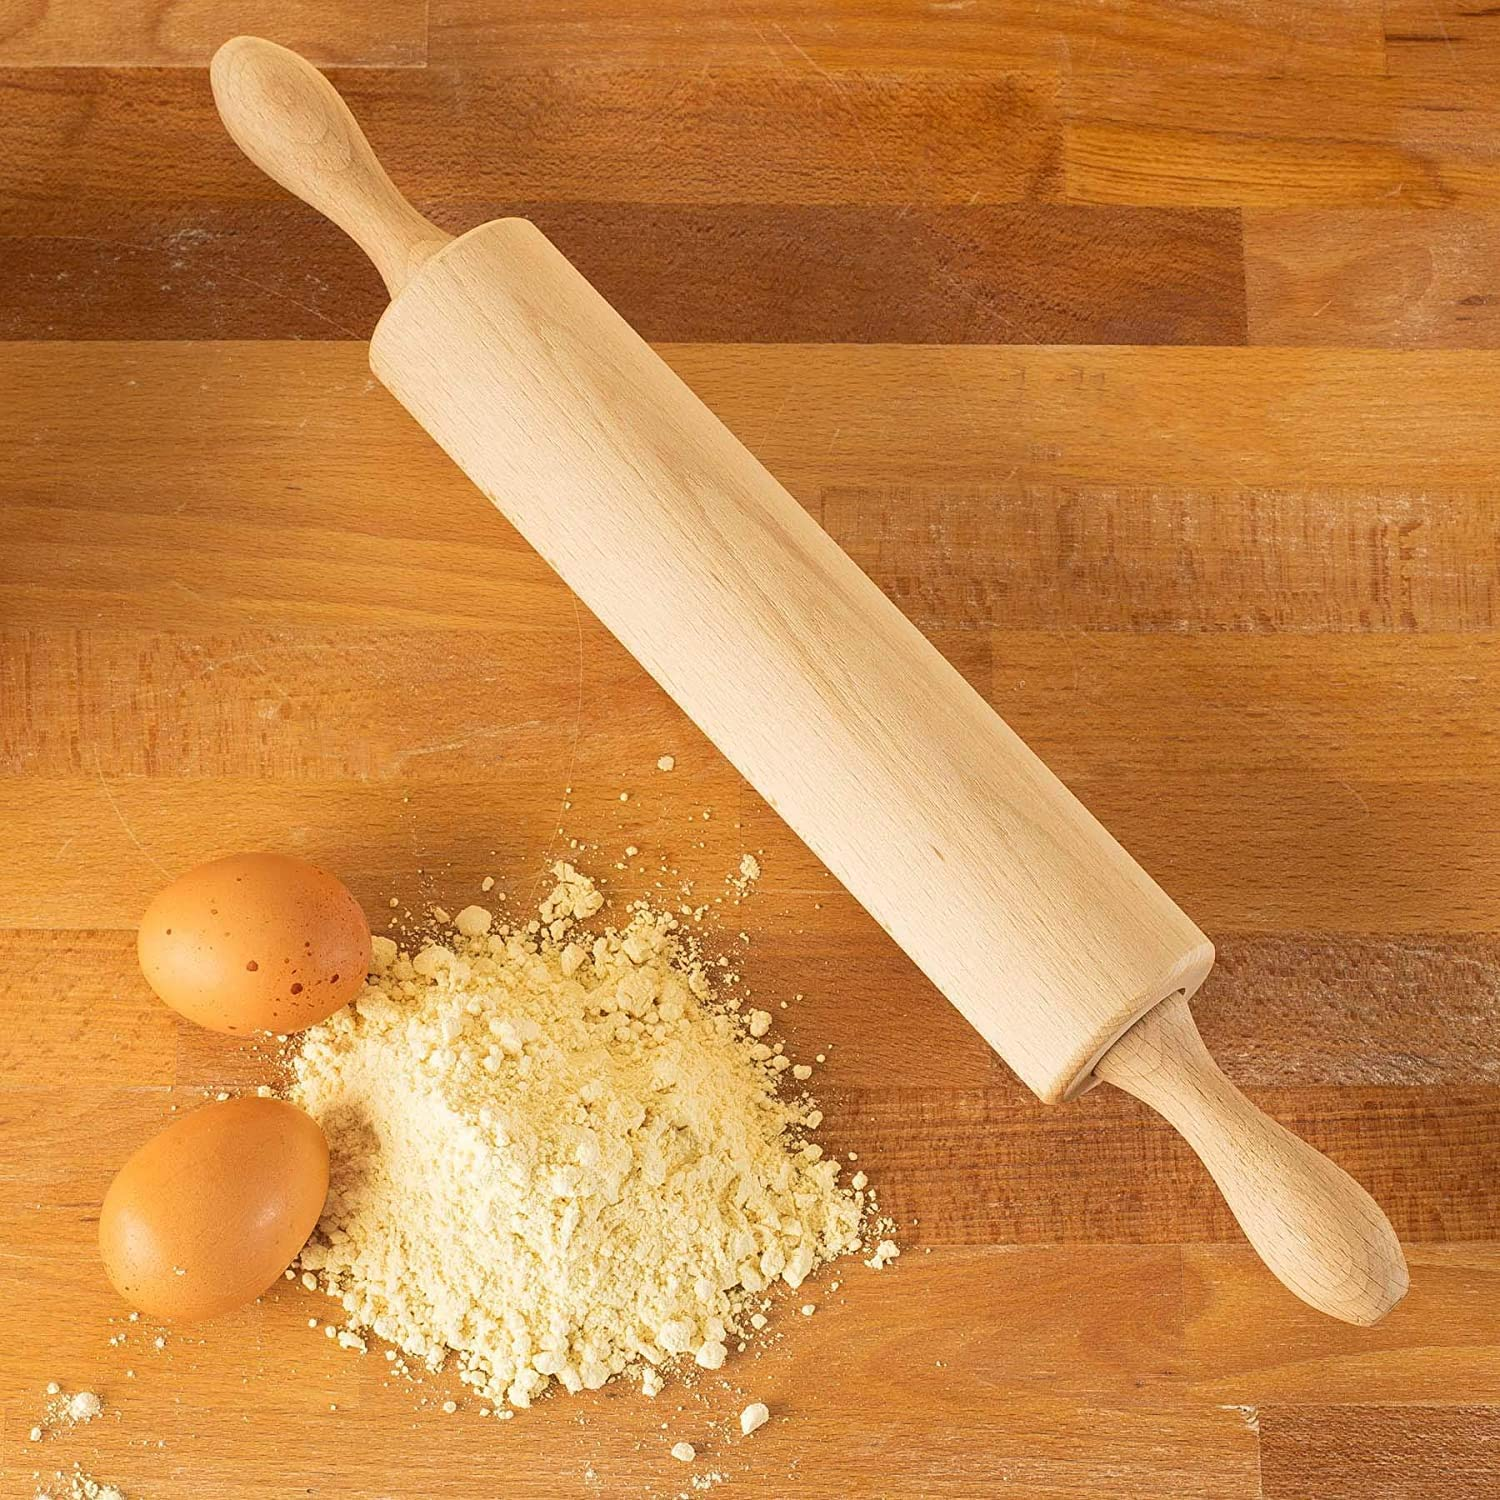 13 Inch Solid Wooden Rolling Pin Rolling Pin For Dough For Pizza Cake And Biscuits Rolling Pin Kitchen Tools